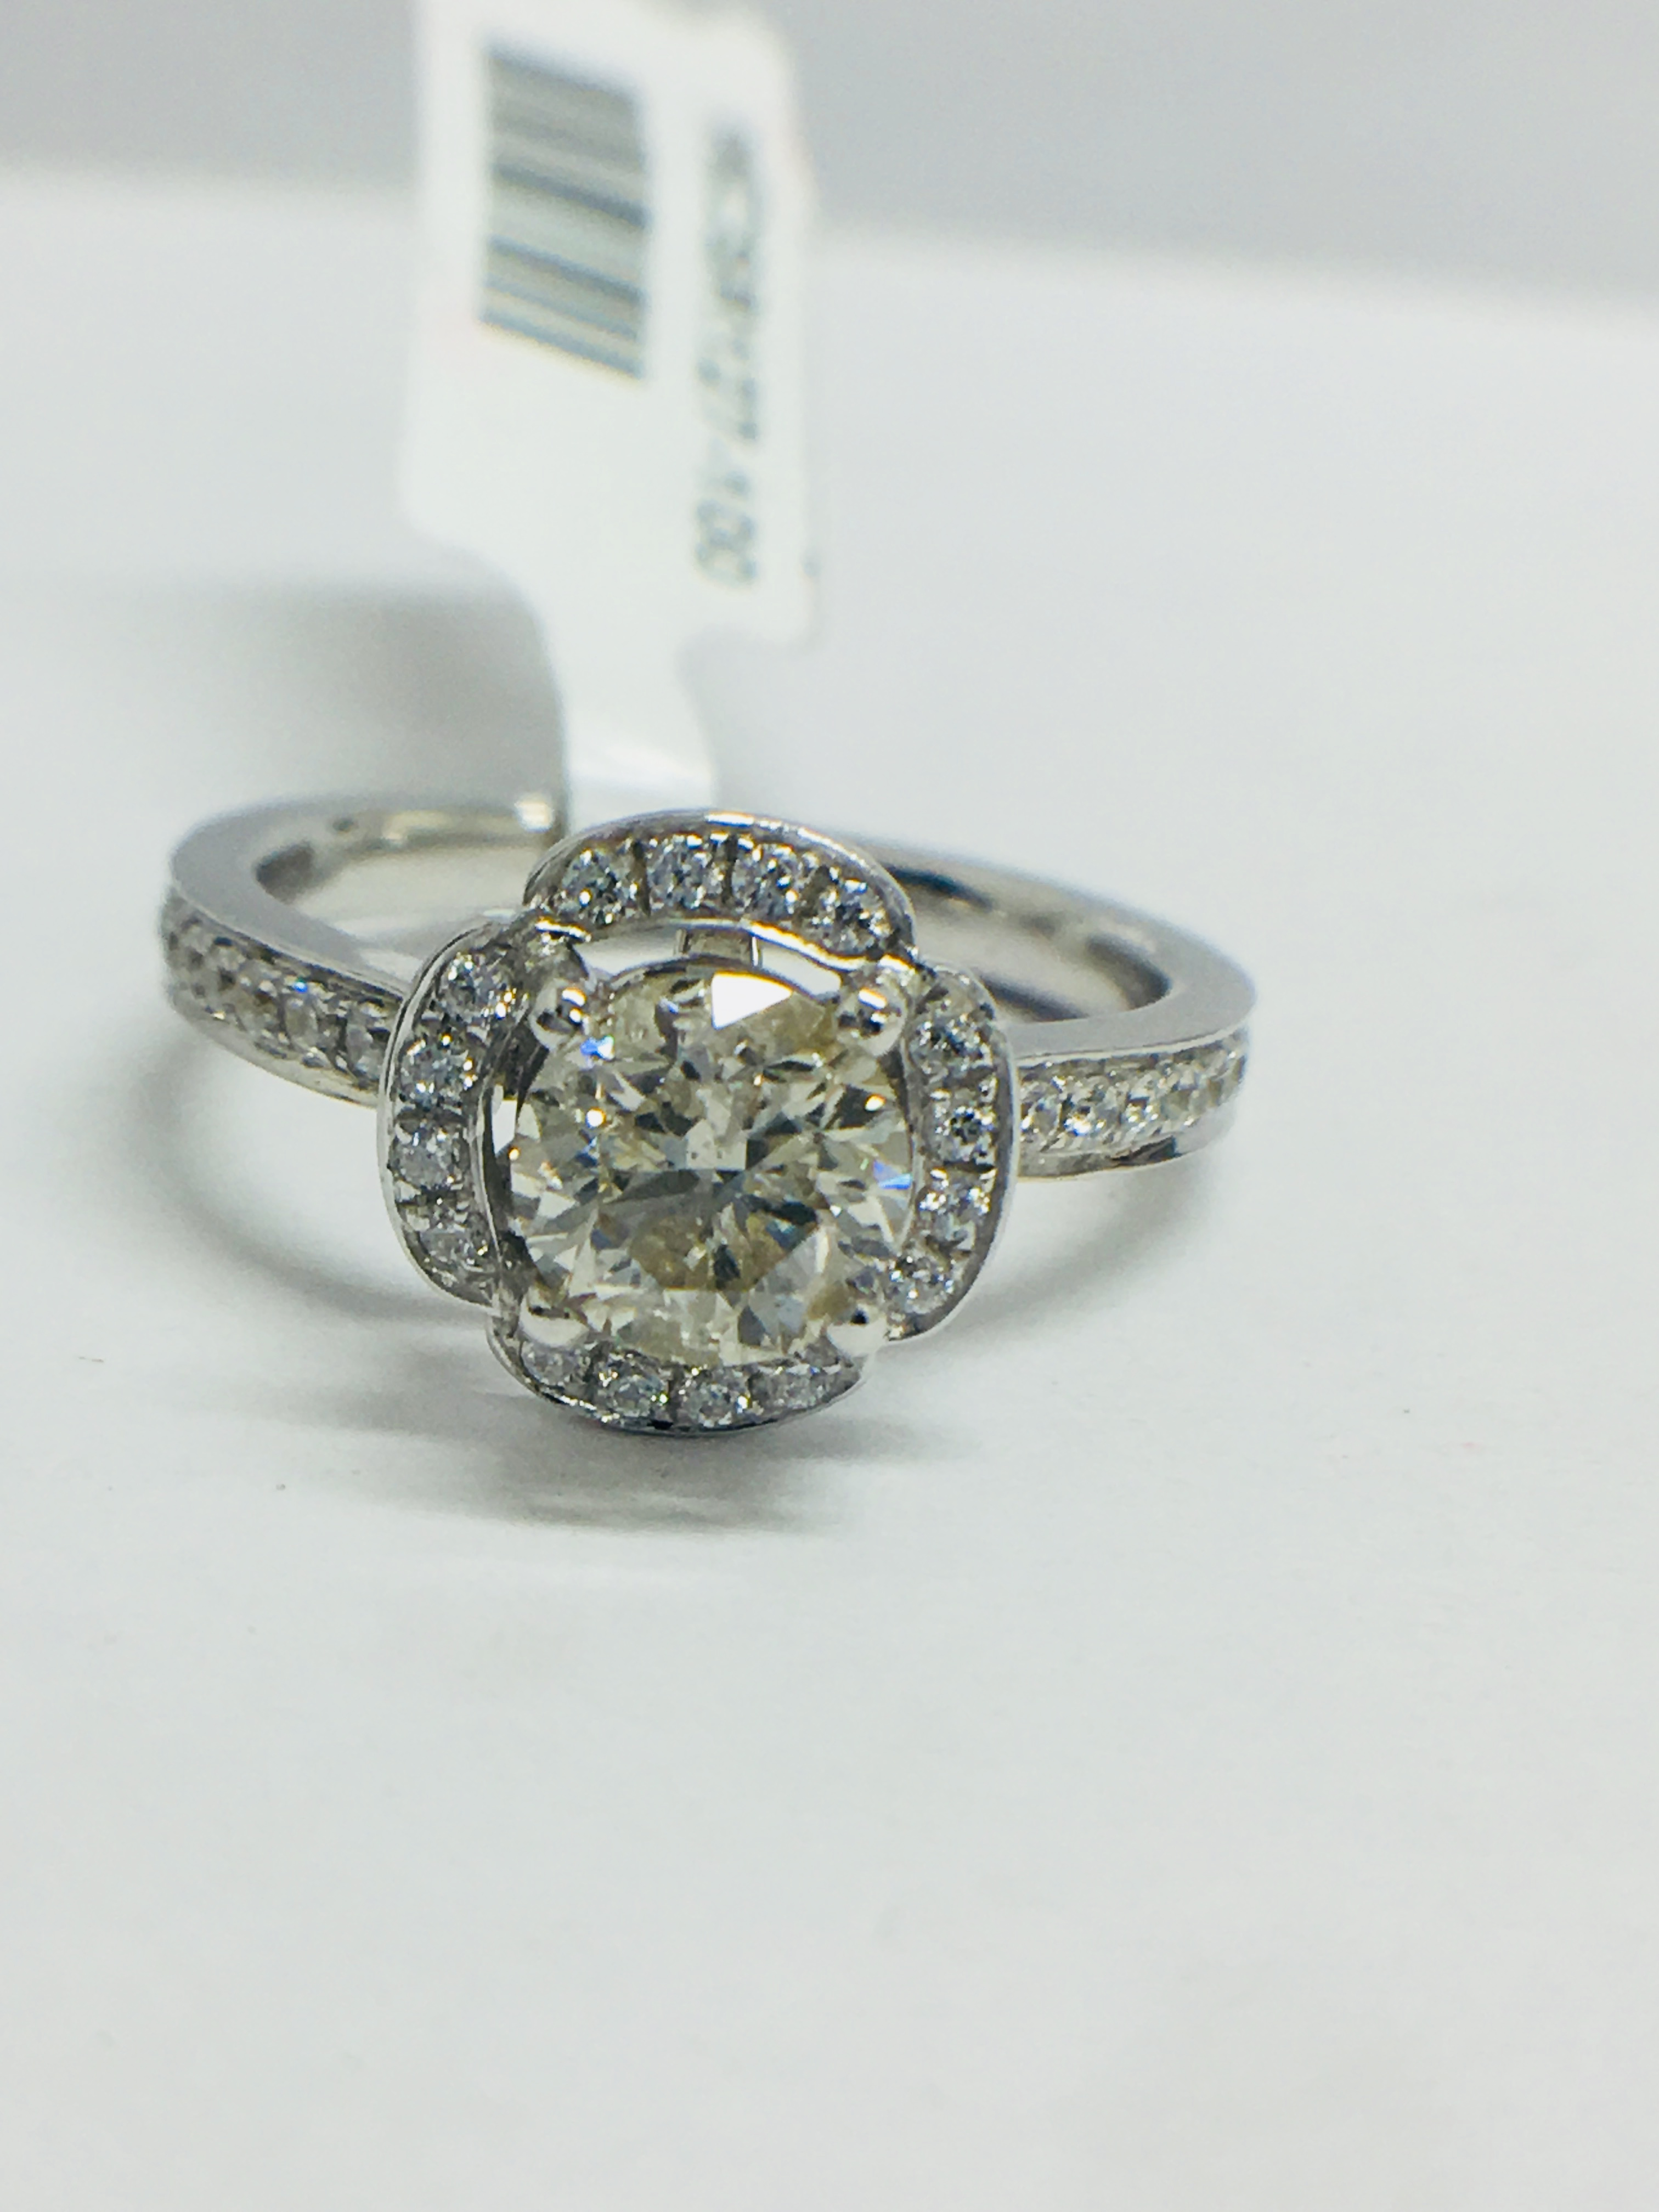 Vente Diamond solitaire jewelry auction, GIA certification chez Diamondauctionsonline Ltd - Auction house : 275 lots